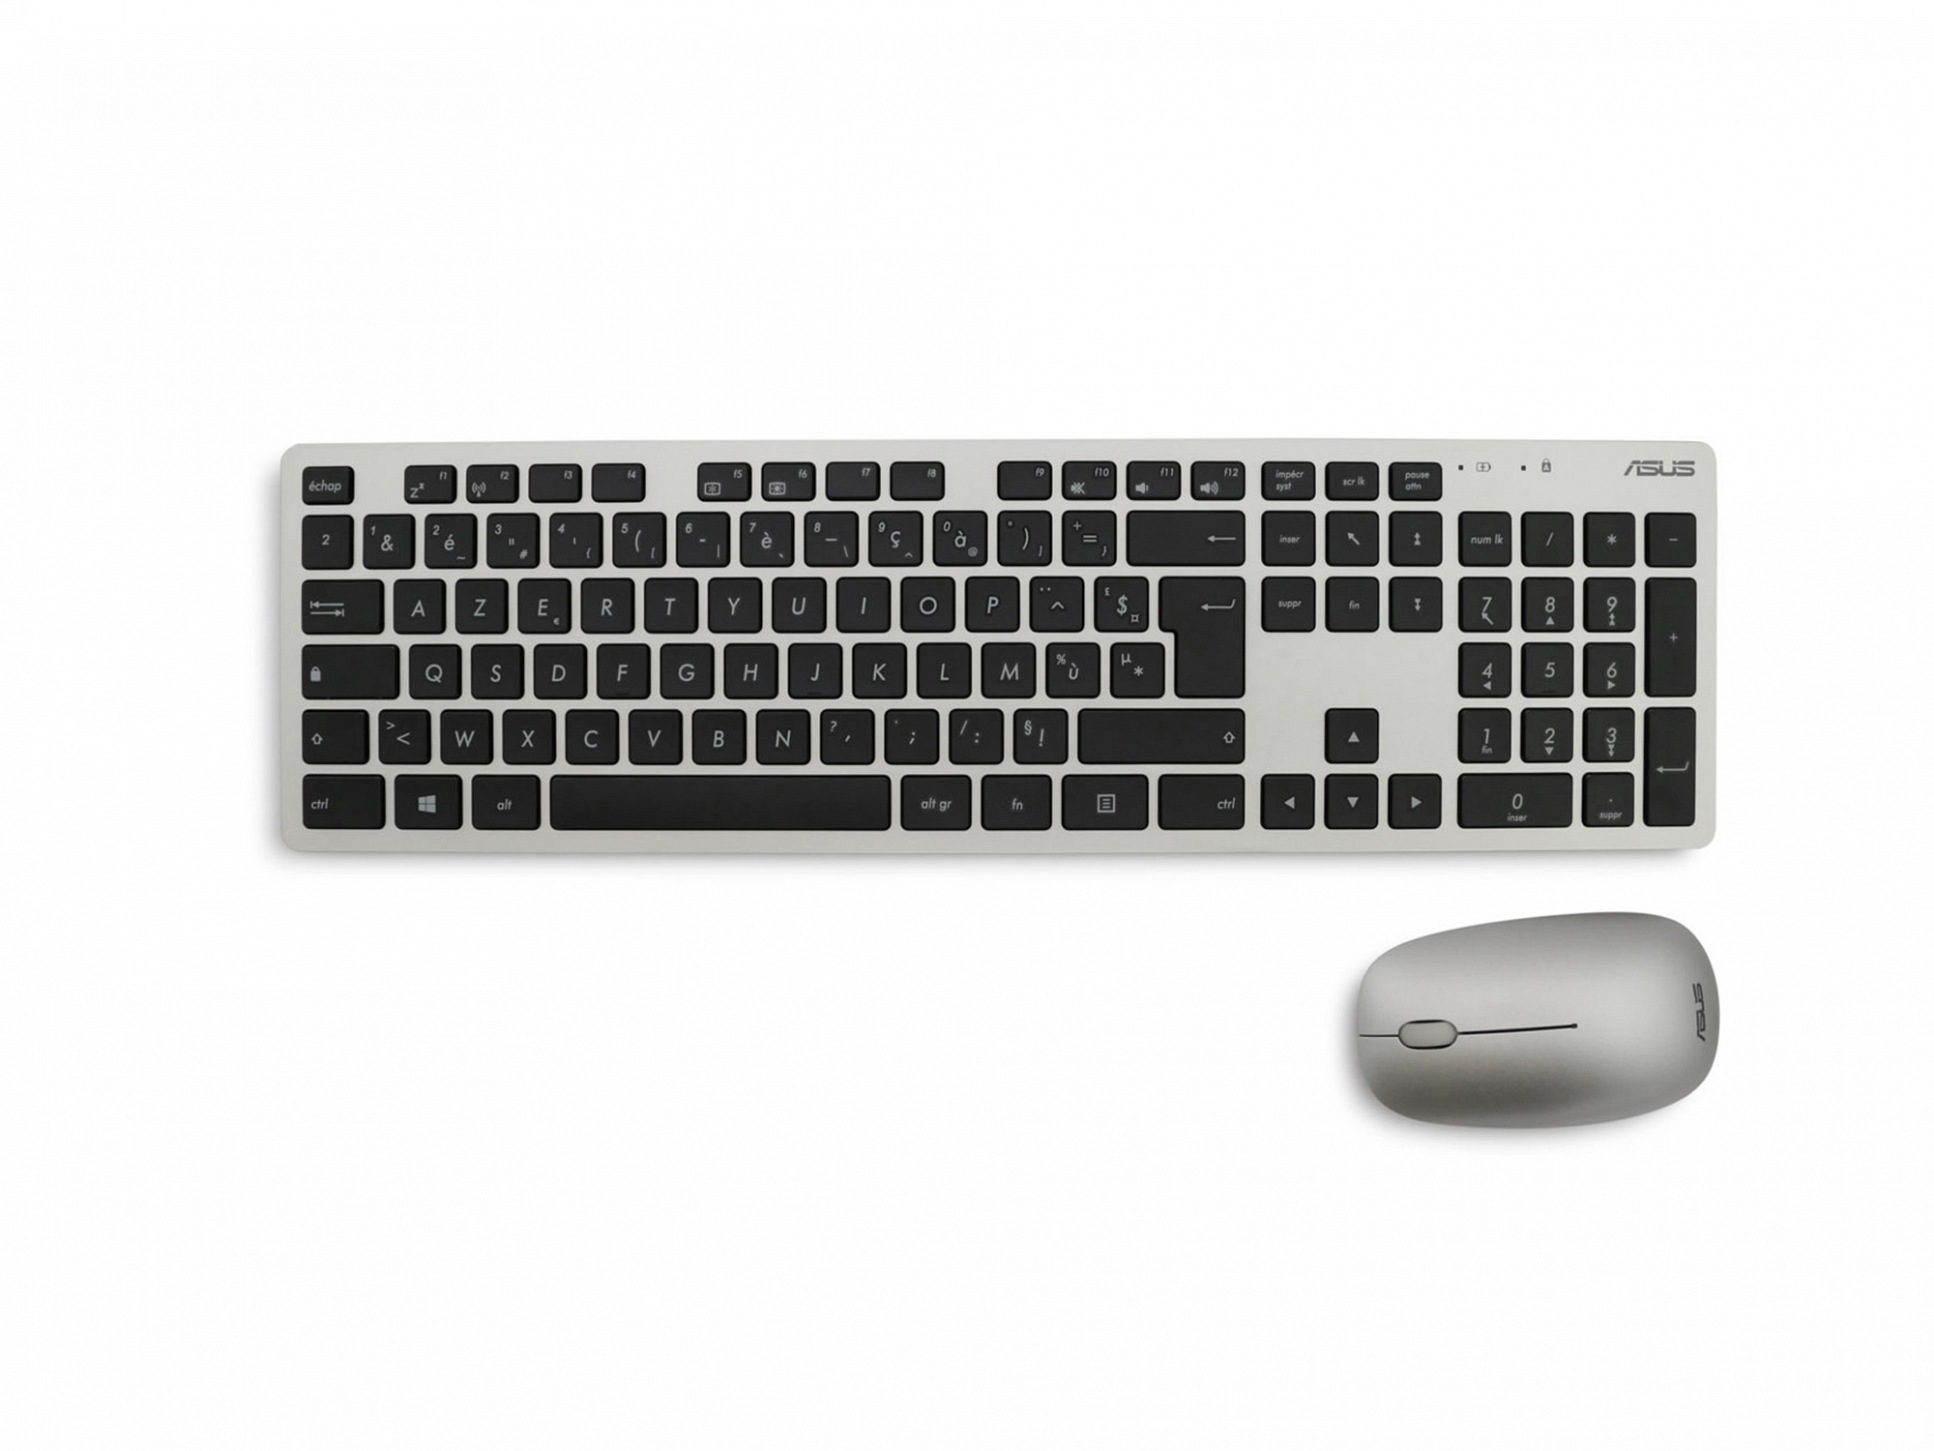 Asus MD-5510 Wireless Tastatur/Maus Kit (FR)